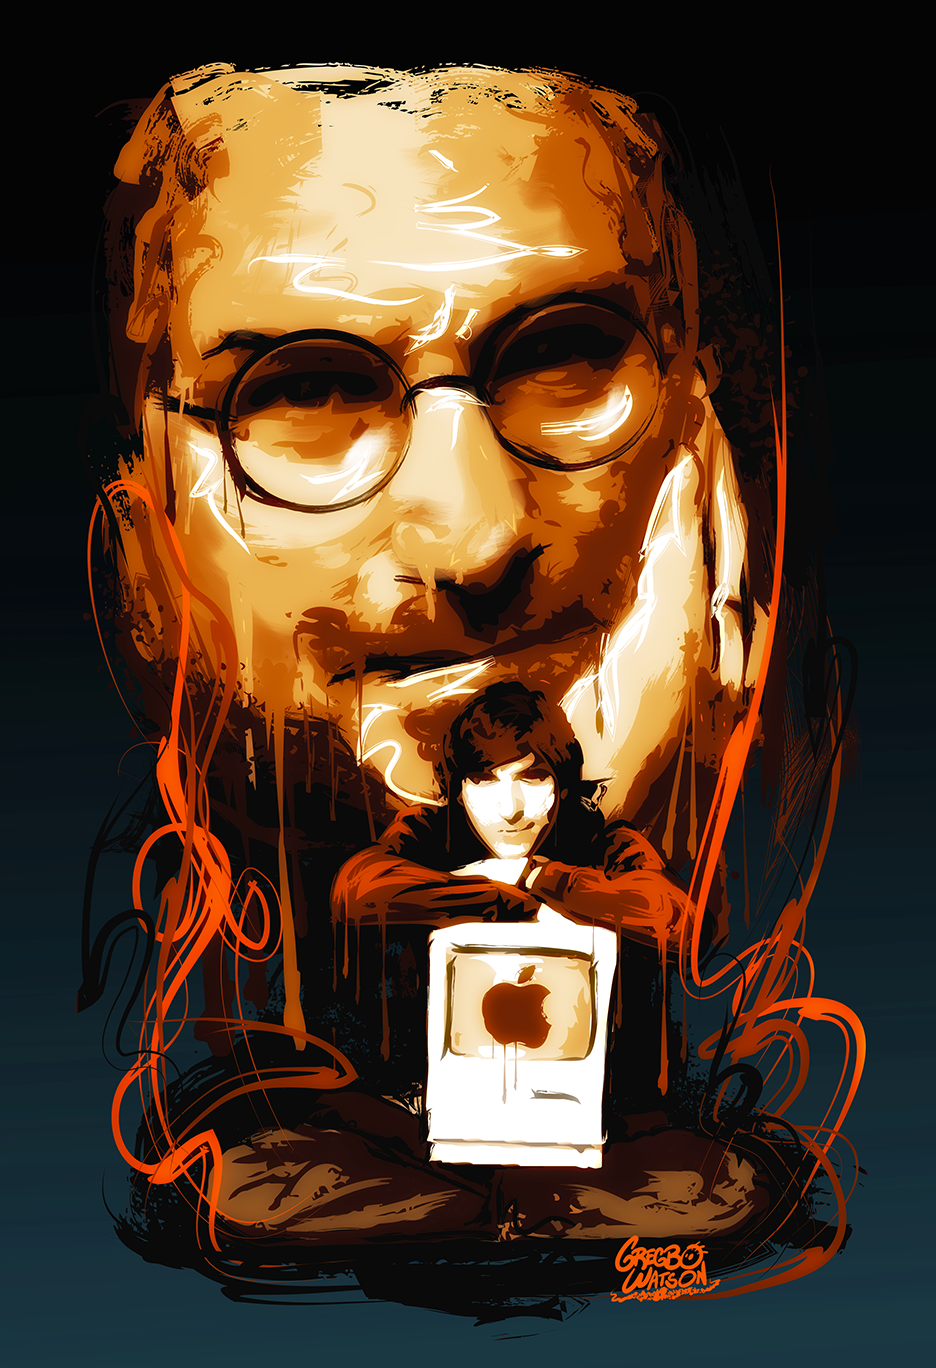 Tribute-to-Steve-Jobs-Gregbo